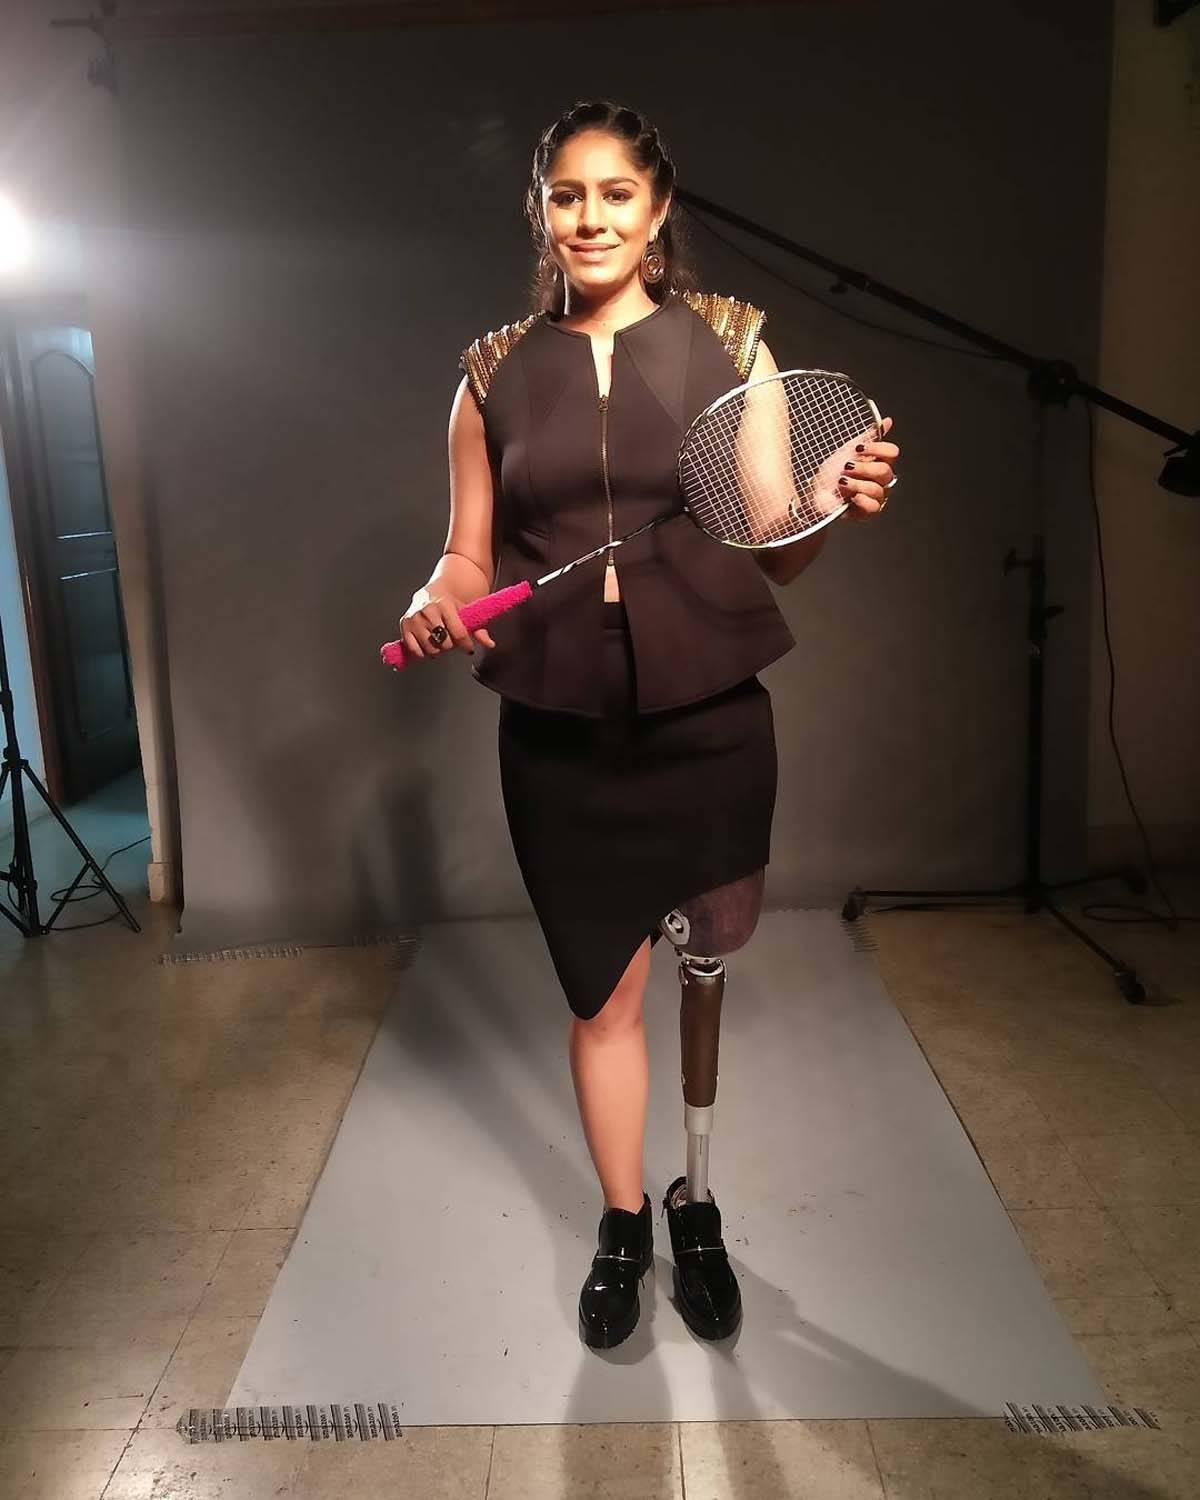 Para-badminton athlete Manasi Joshi is an unstoppable force inspiring millions